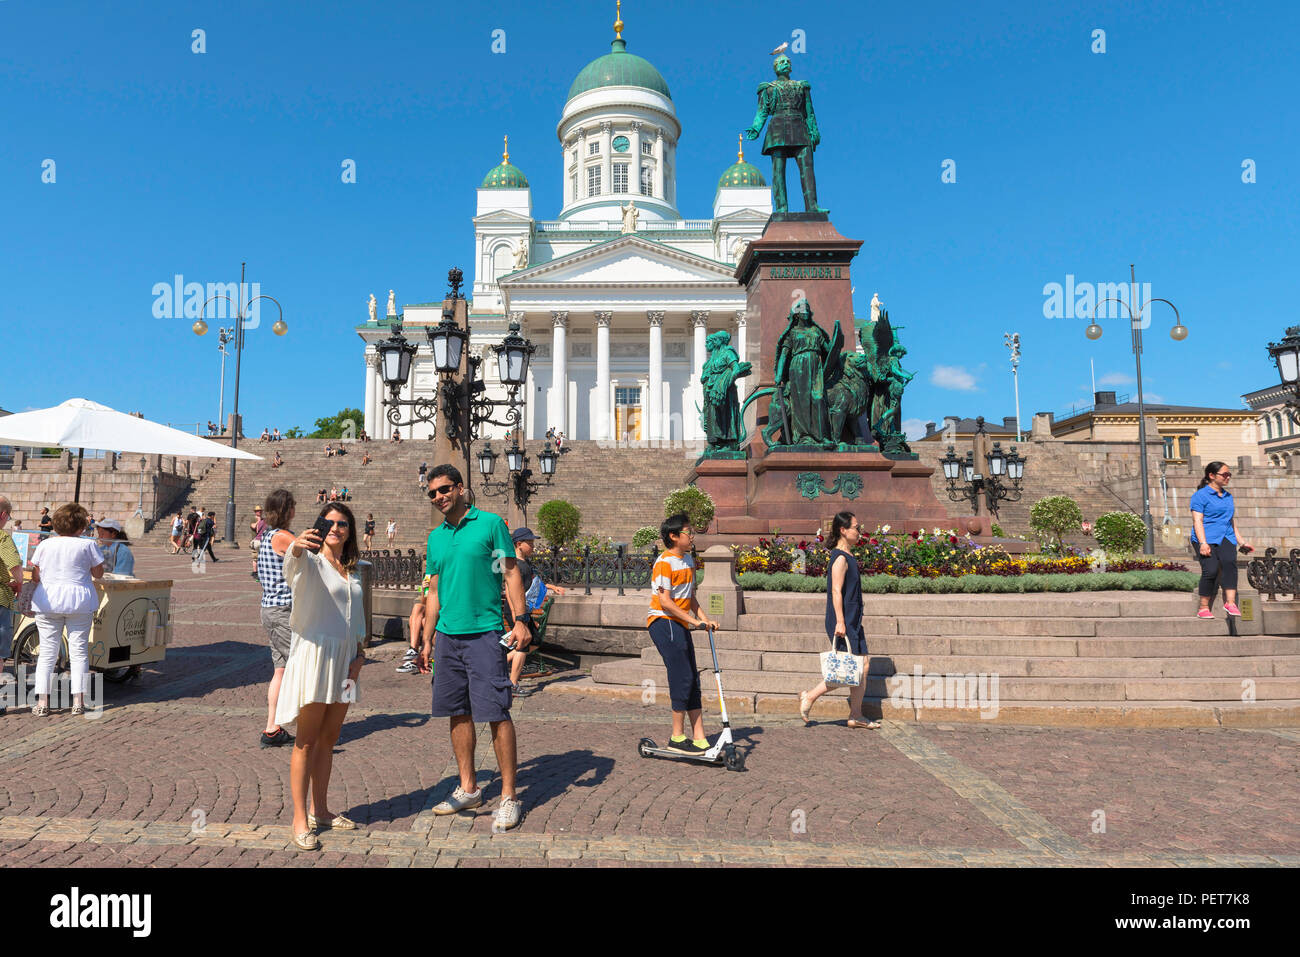 Finland tourism summer, view of a tourist couple in Helsinki posing for a selfie photo in front of the Lutheran Cathedral and Alexander Monument. - Stock Image